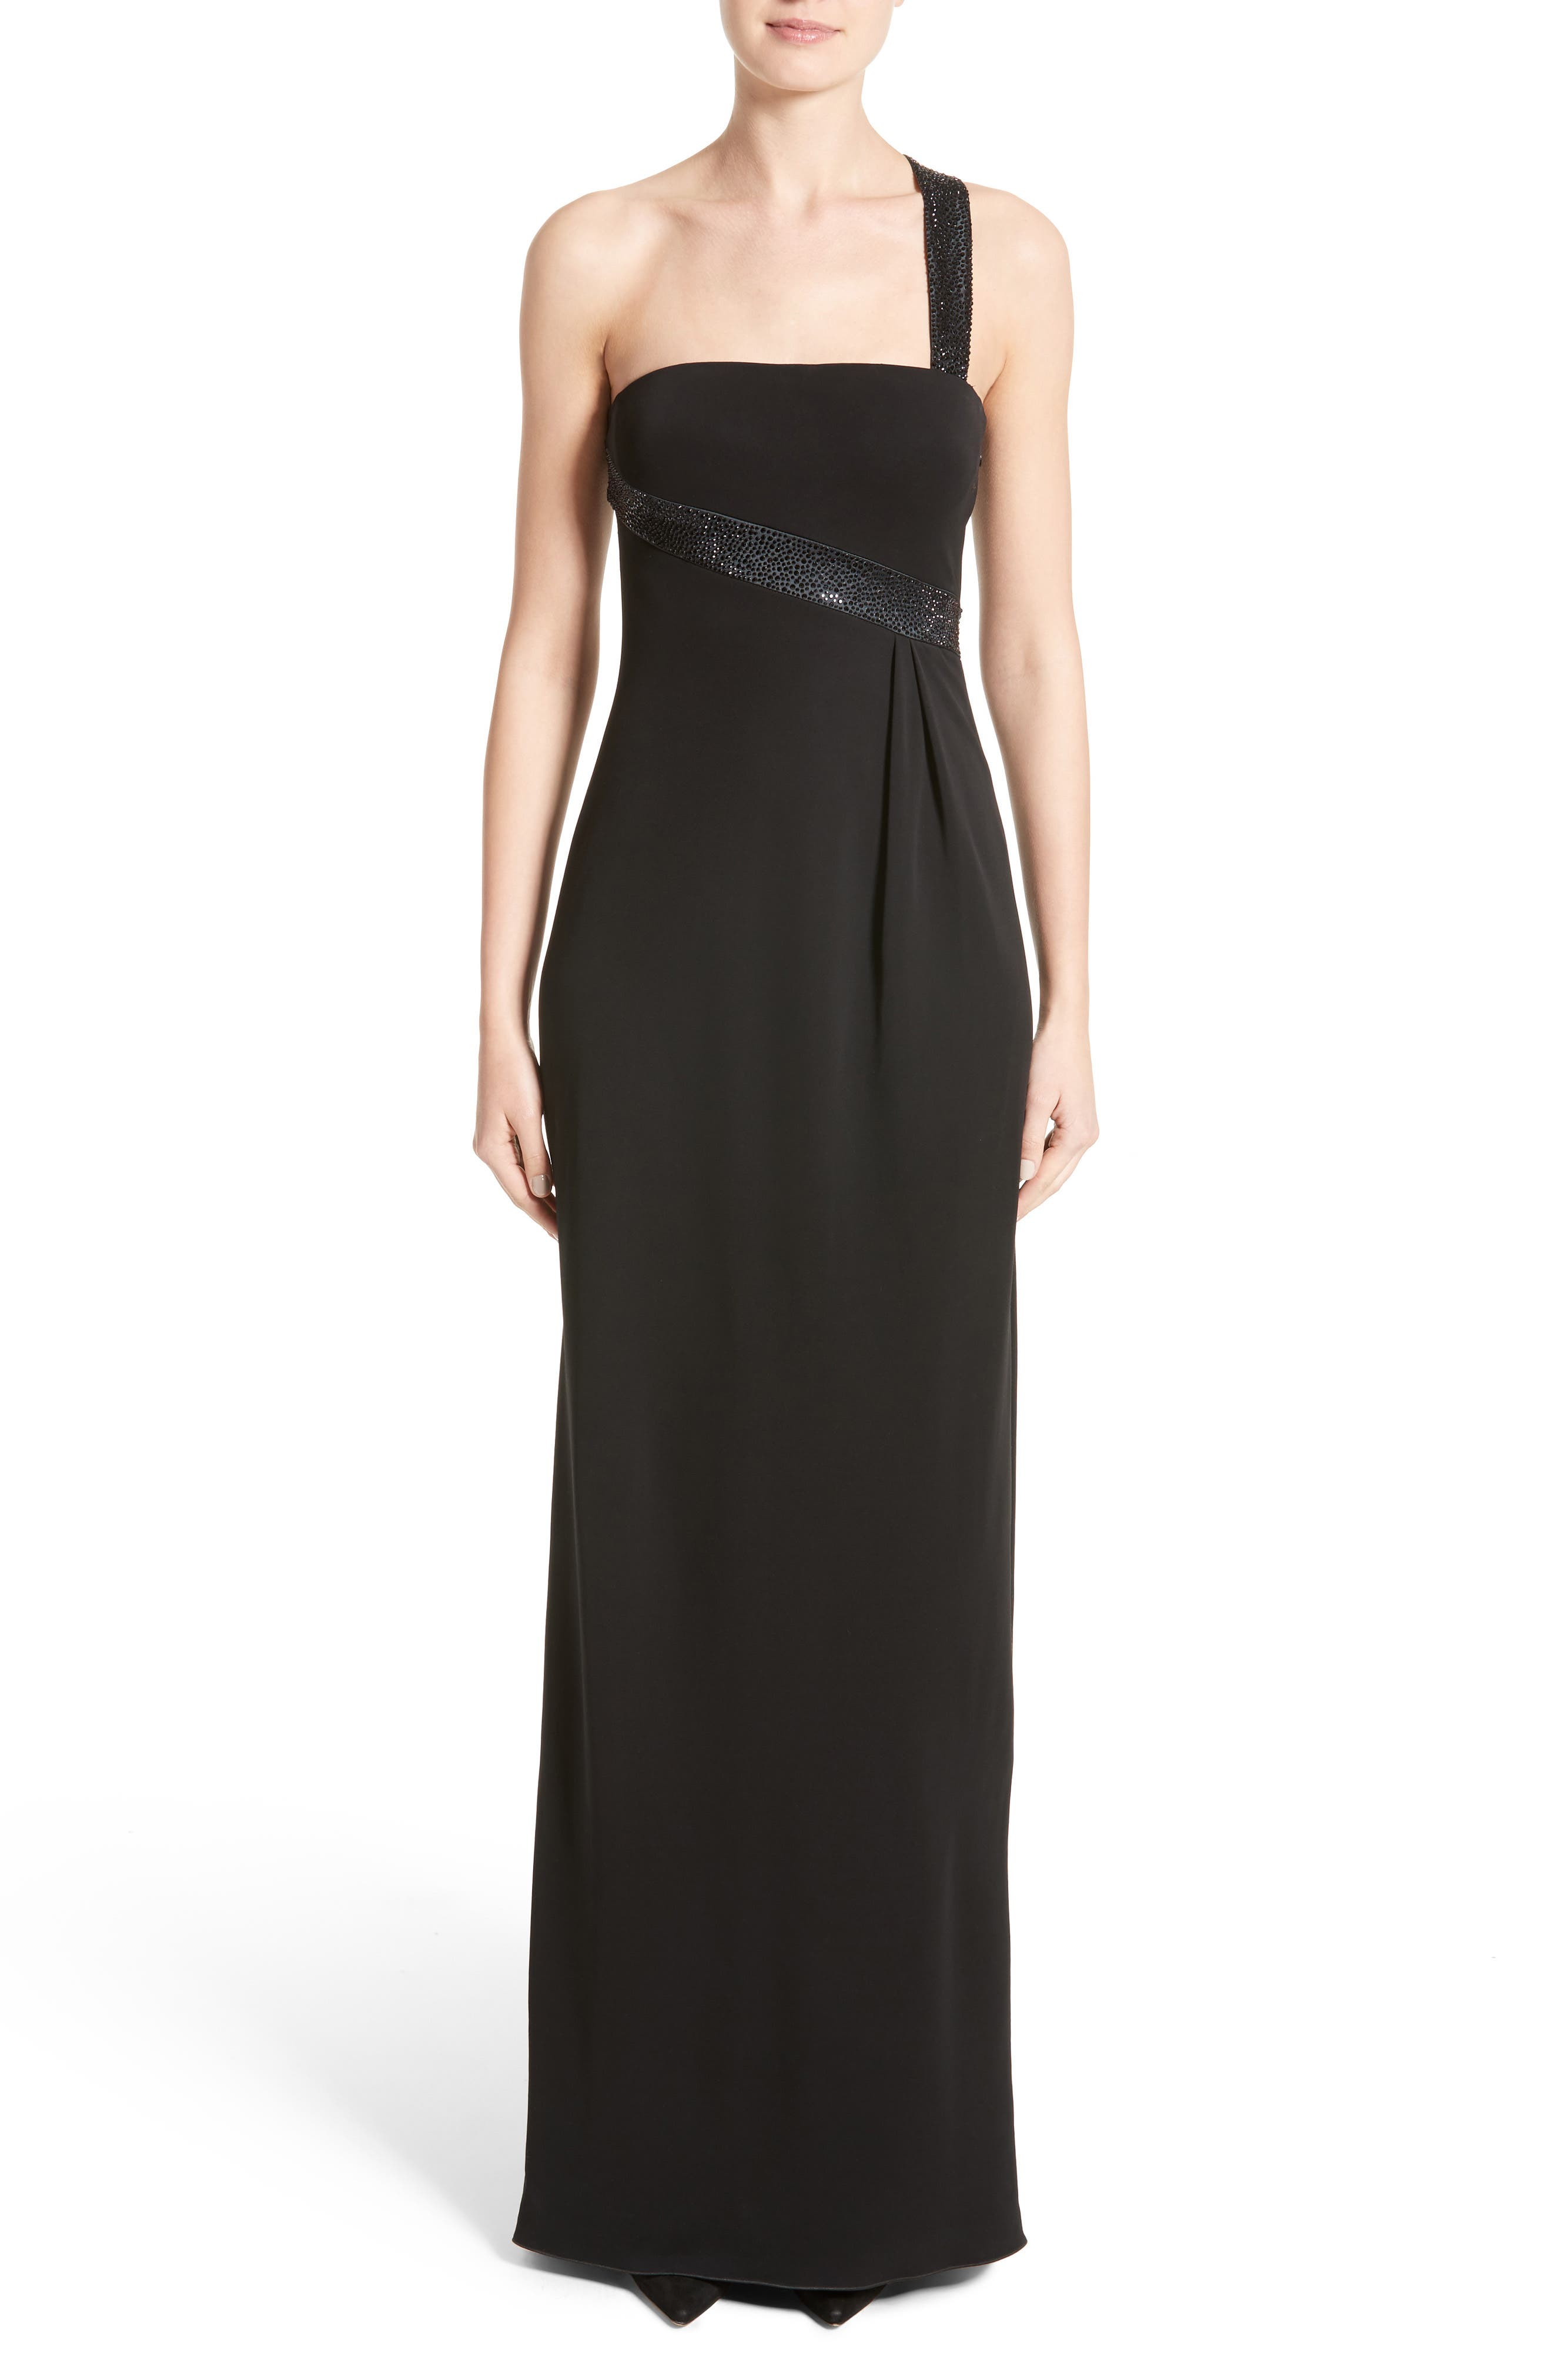 Alternate Image 1 Selected - Armani Collezioni Crystal Trim Matte Jersey Gown